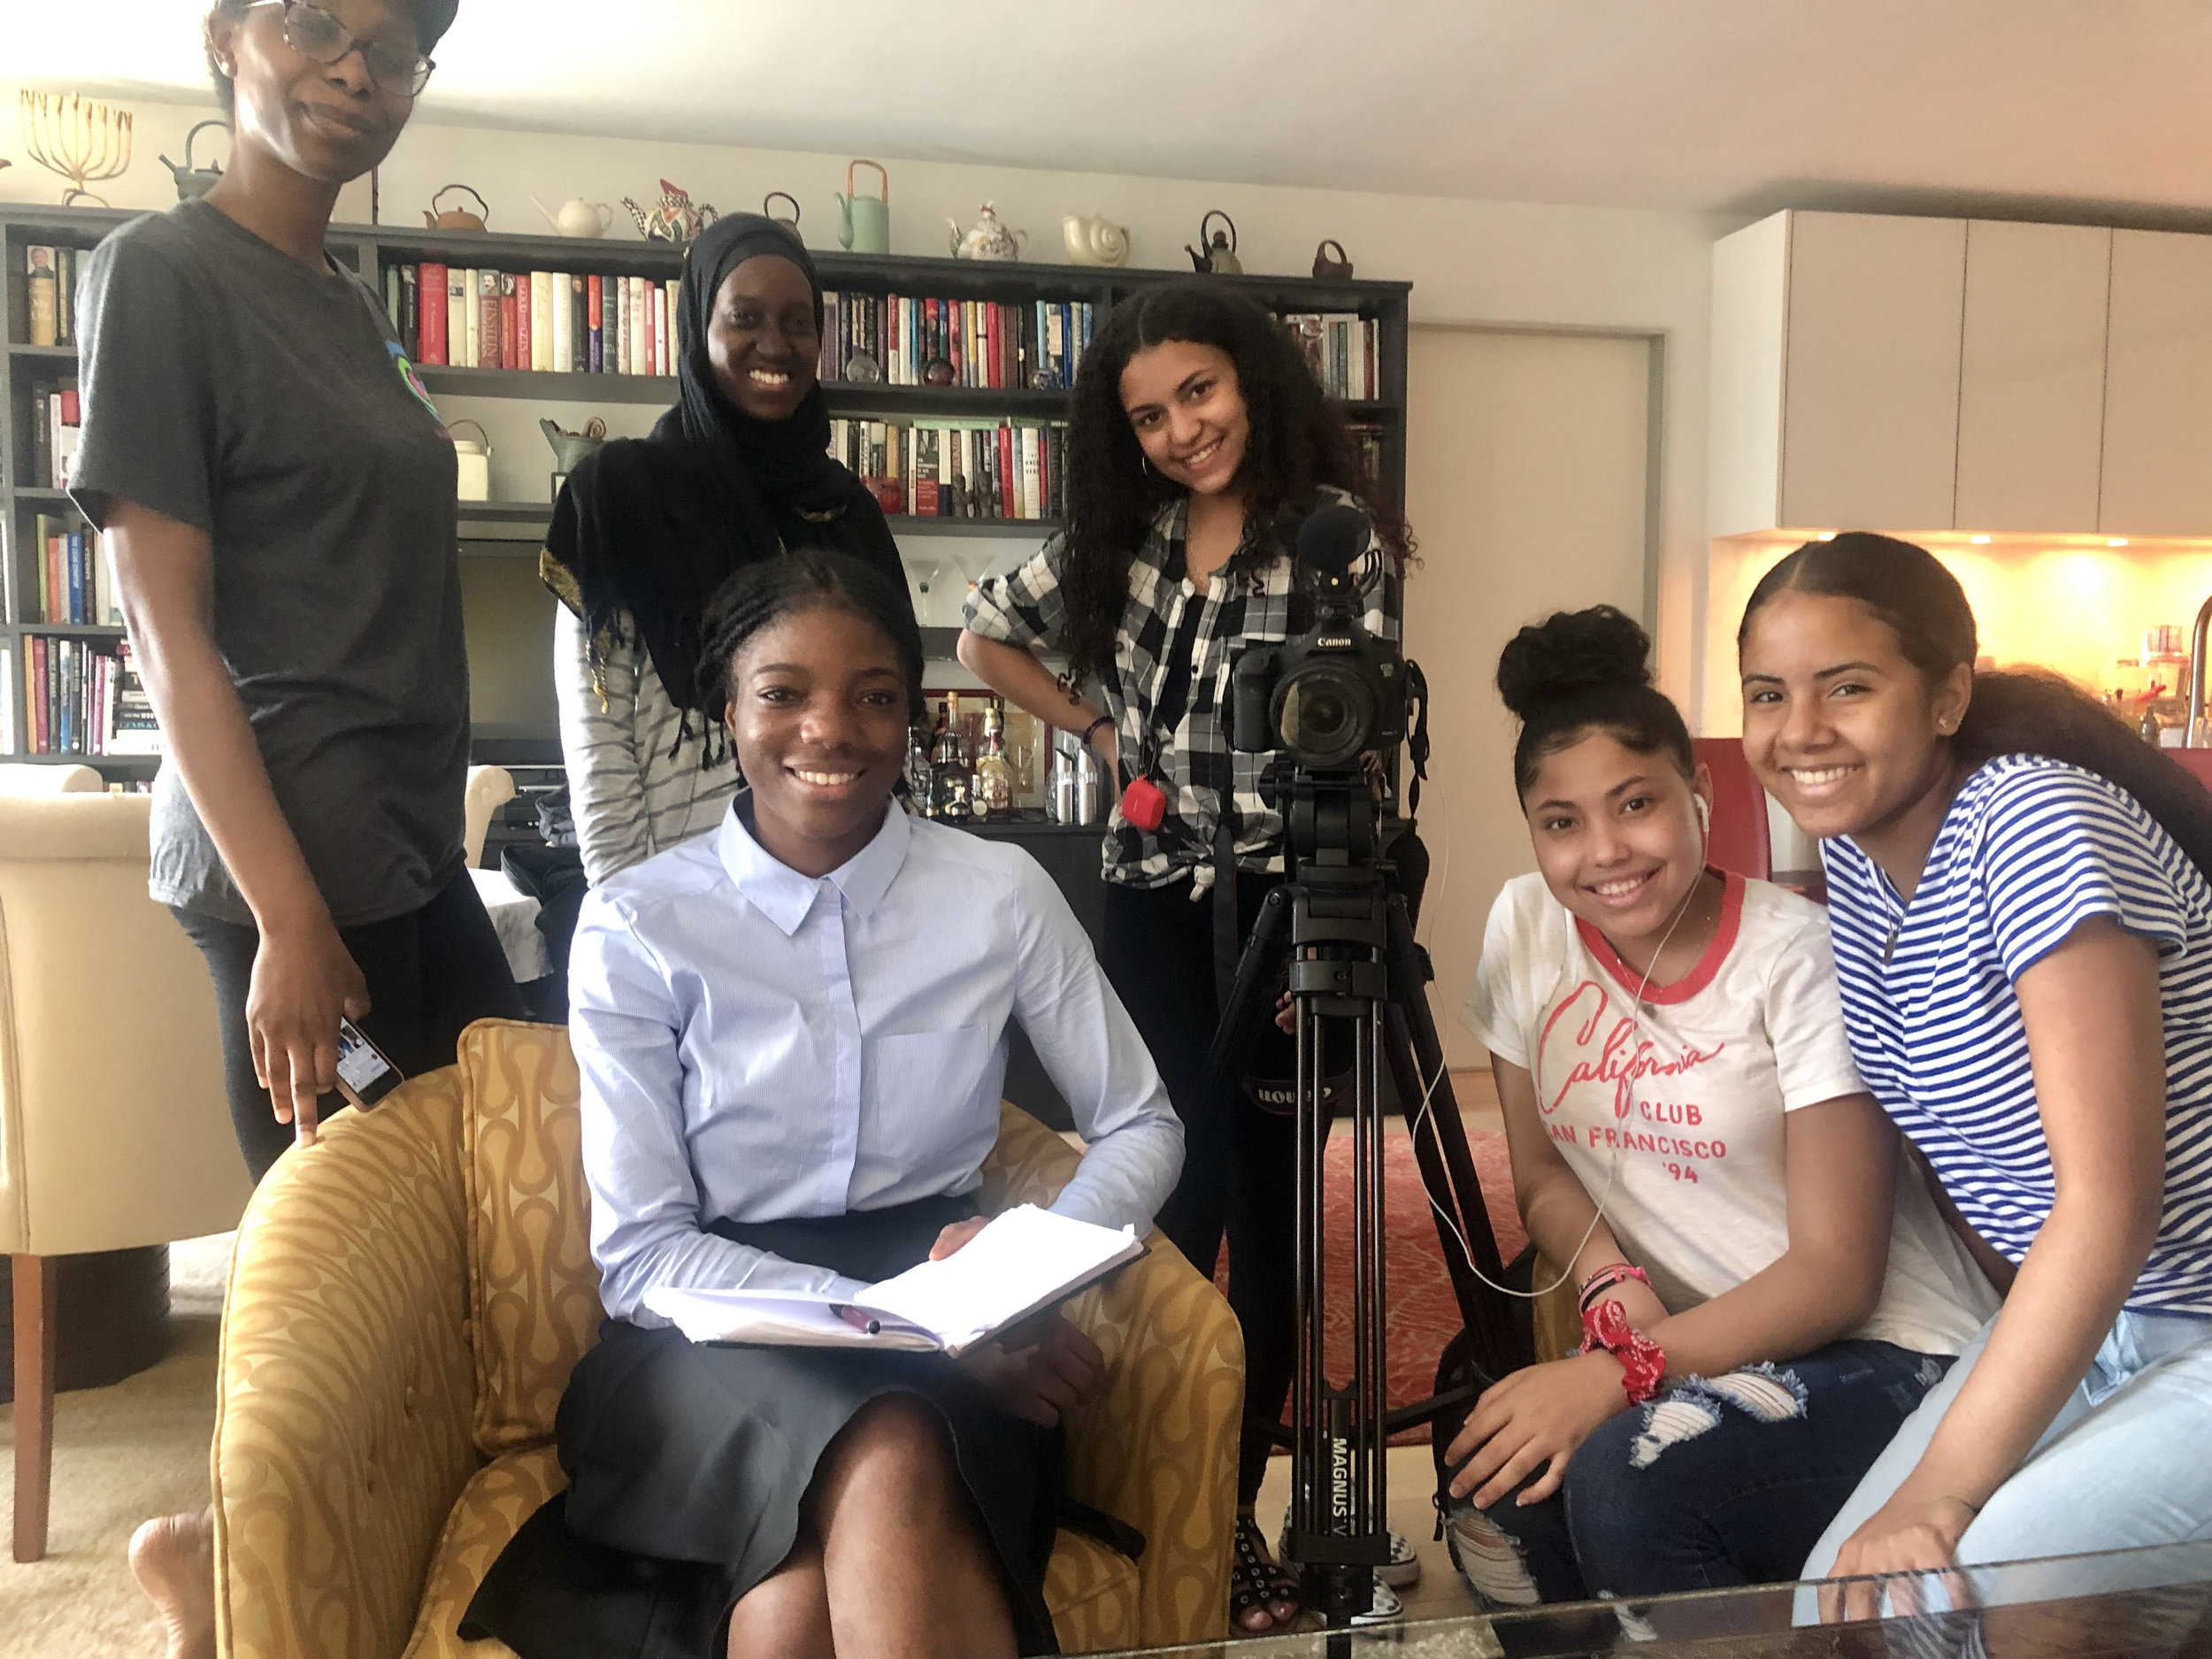 These young women representing  Global Girl Media  came to interview me this week with lots of questions about the pluses and minuses of aging for women.